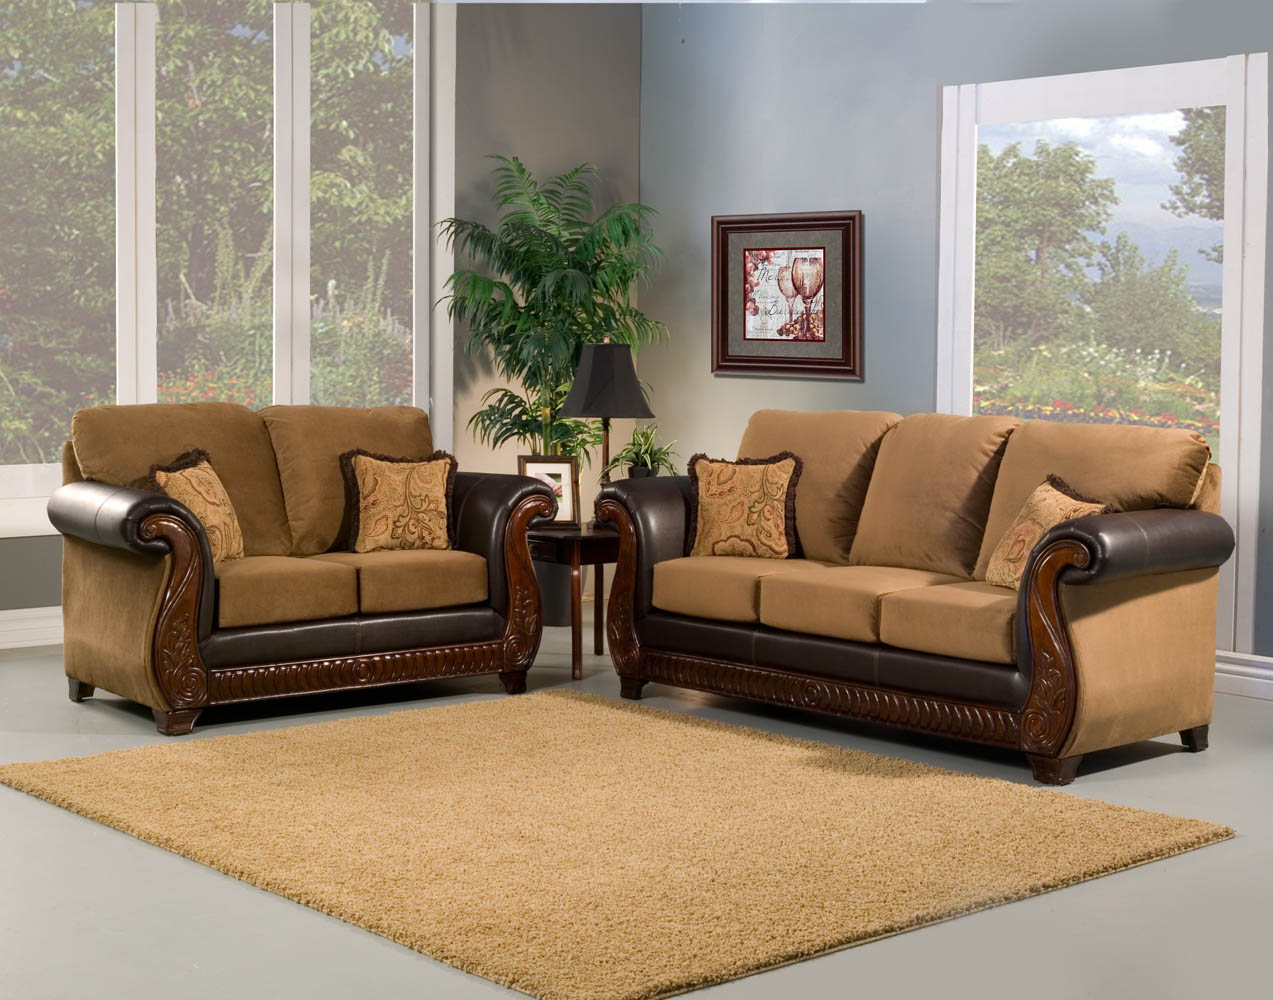 2 piece tan sofa set with wood decoration for 2 piece living room furniture set